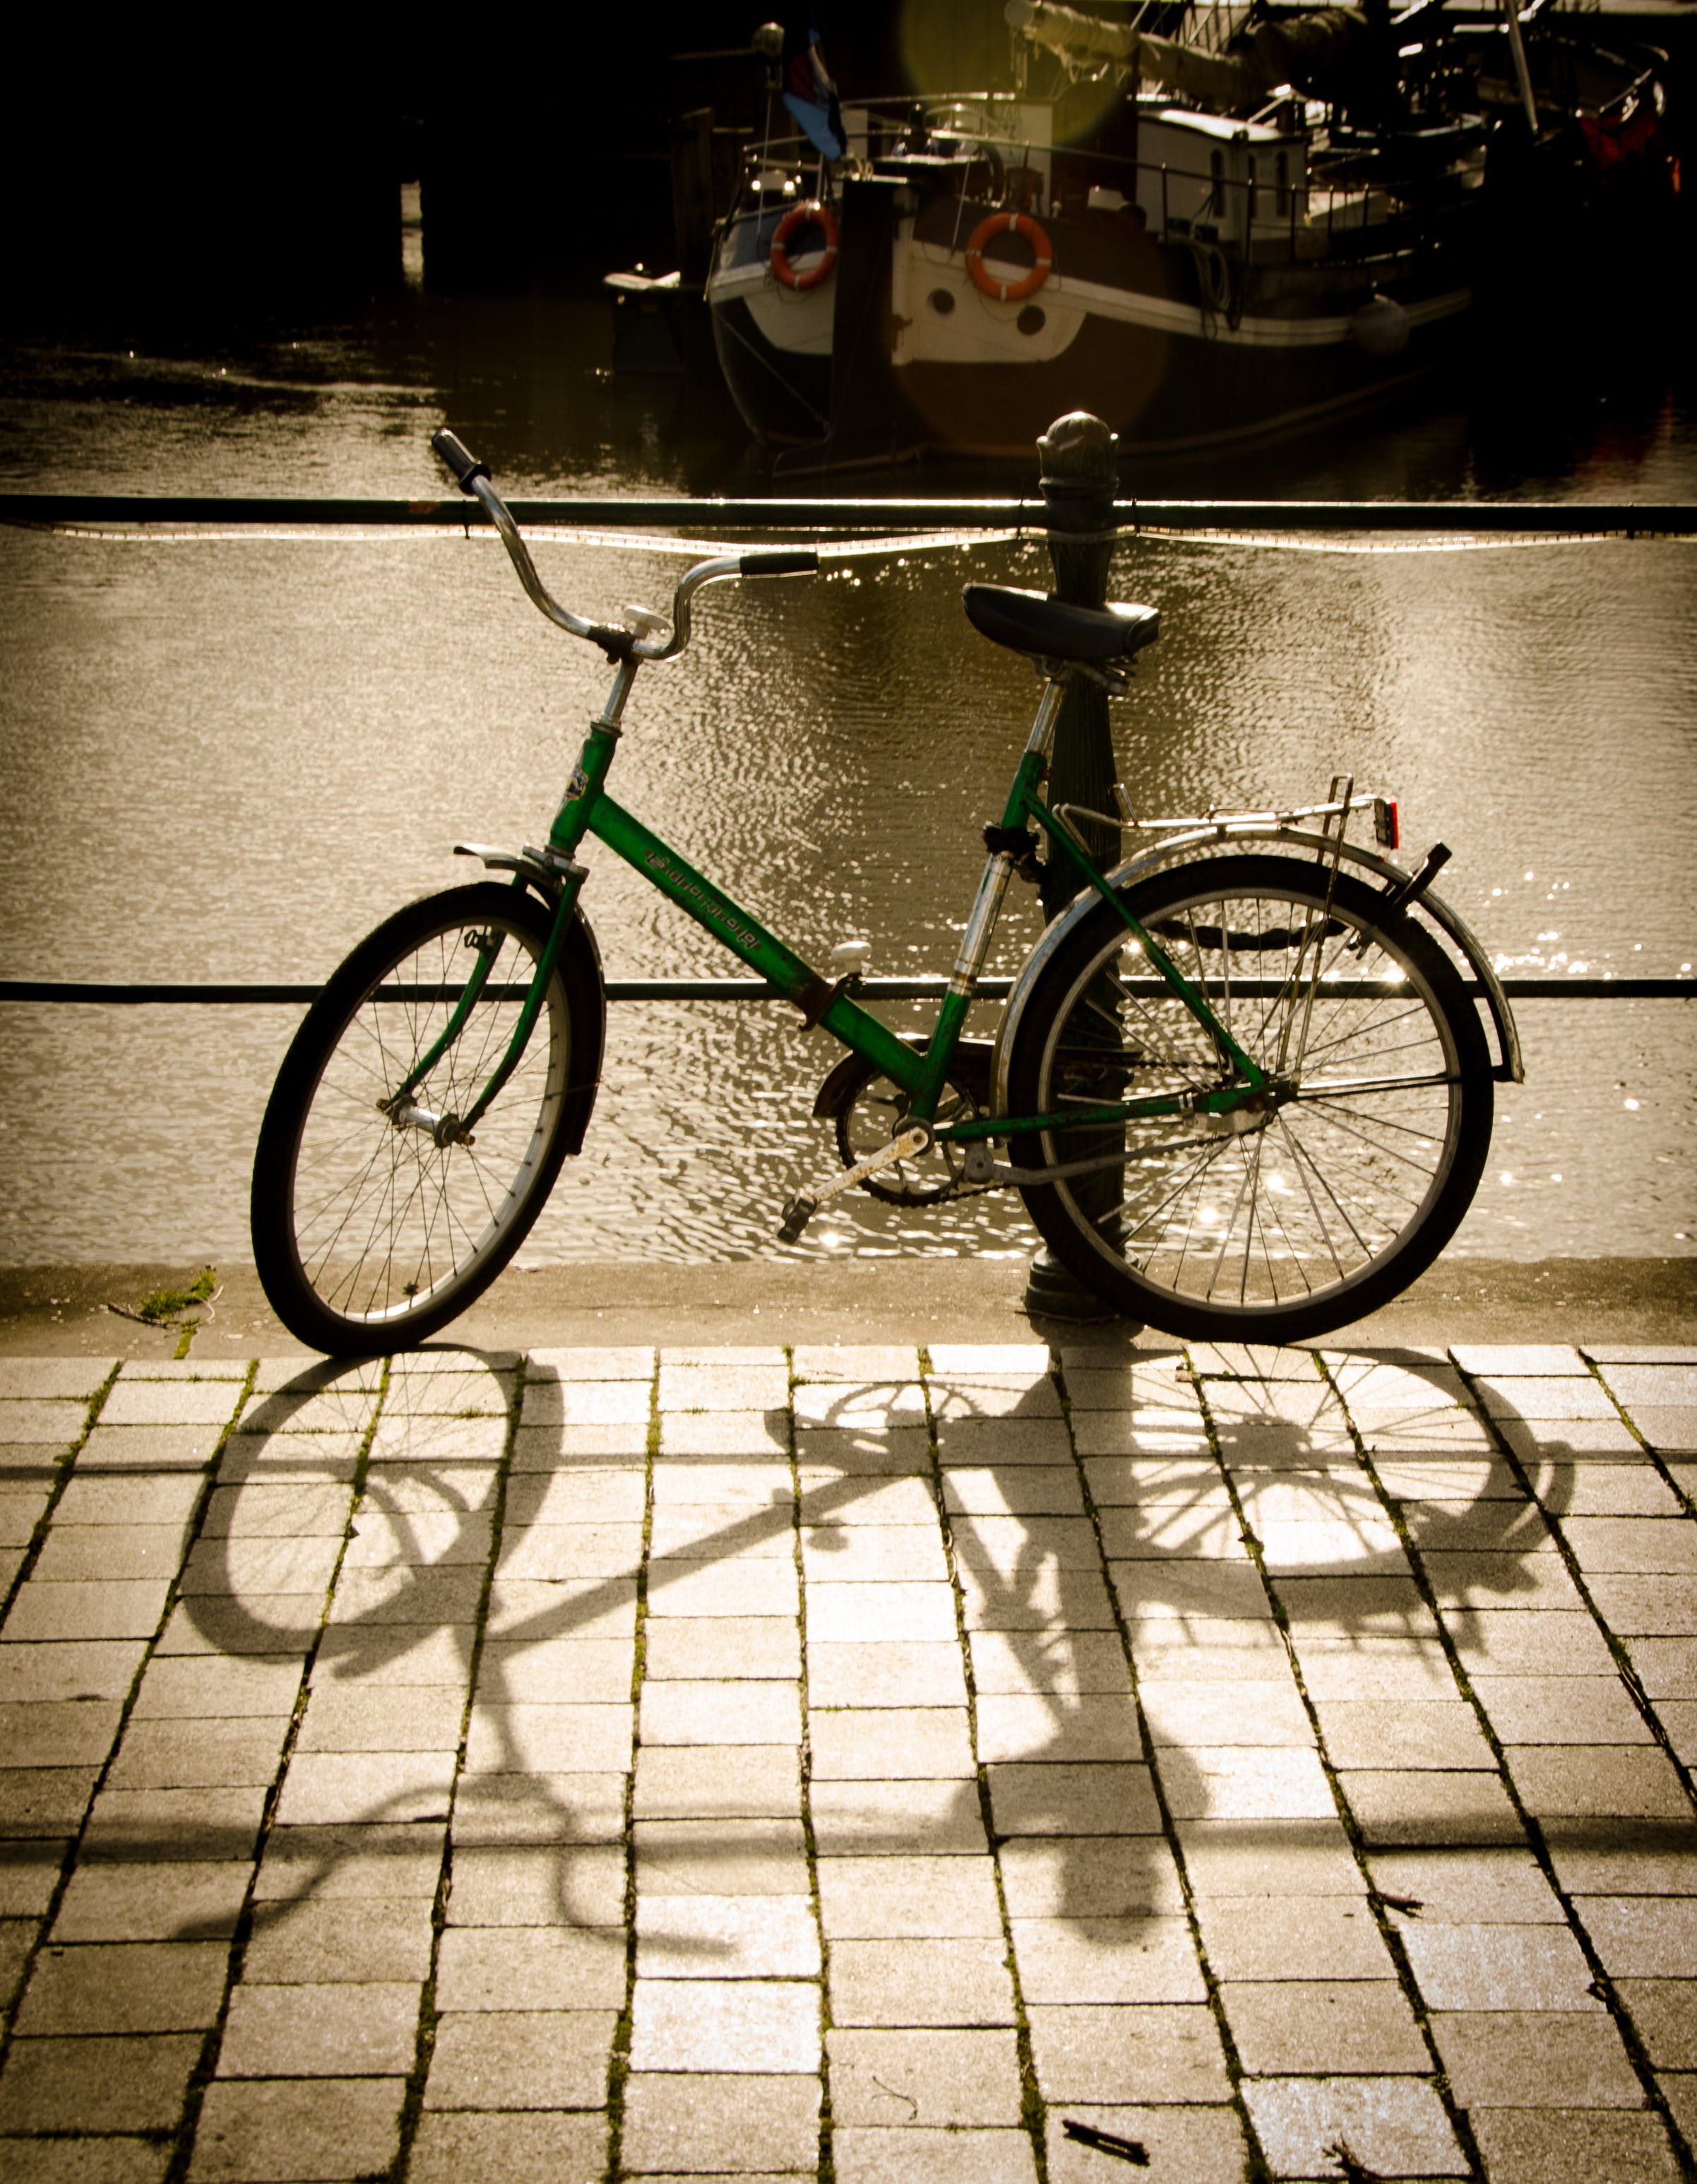 Green Bike Parked Beside the Body of Water